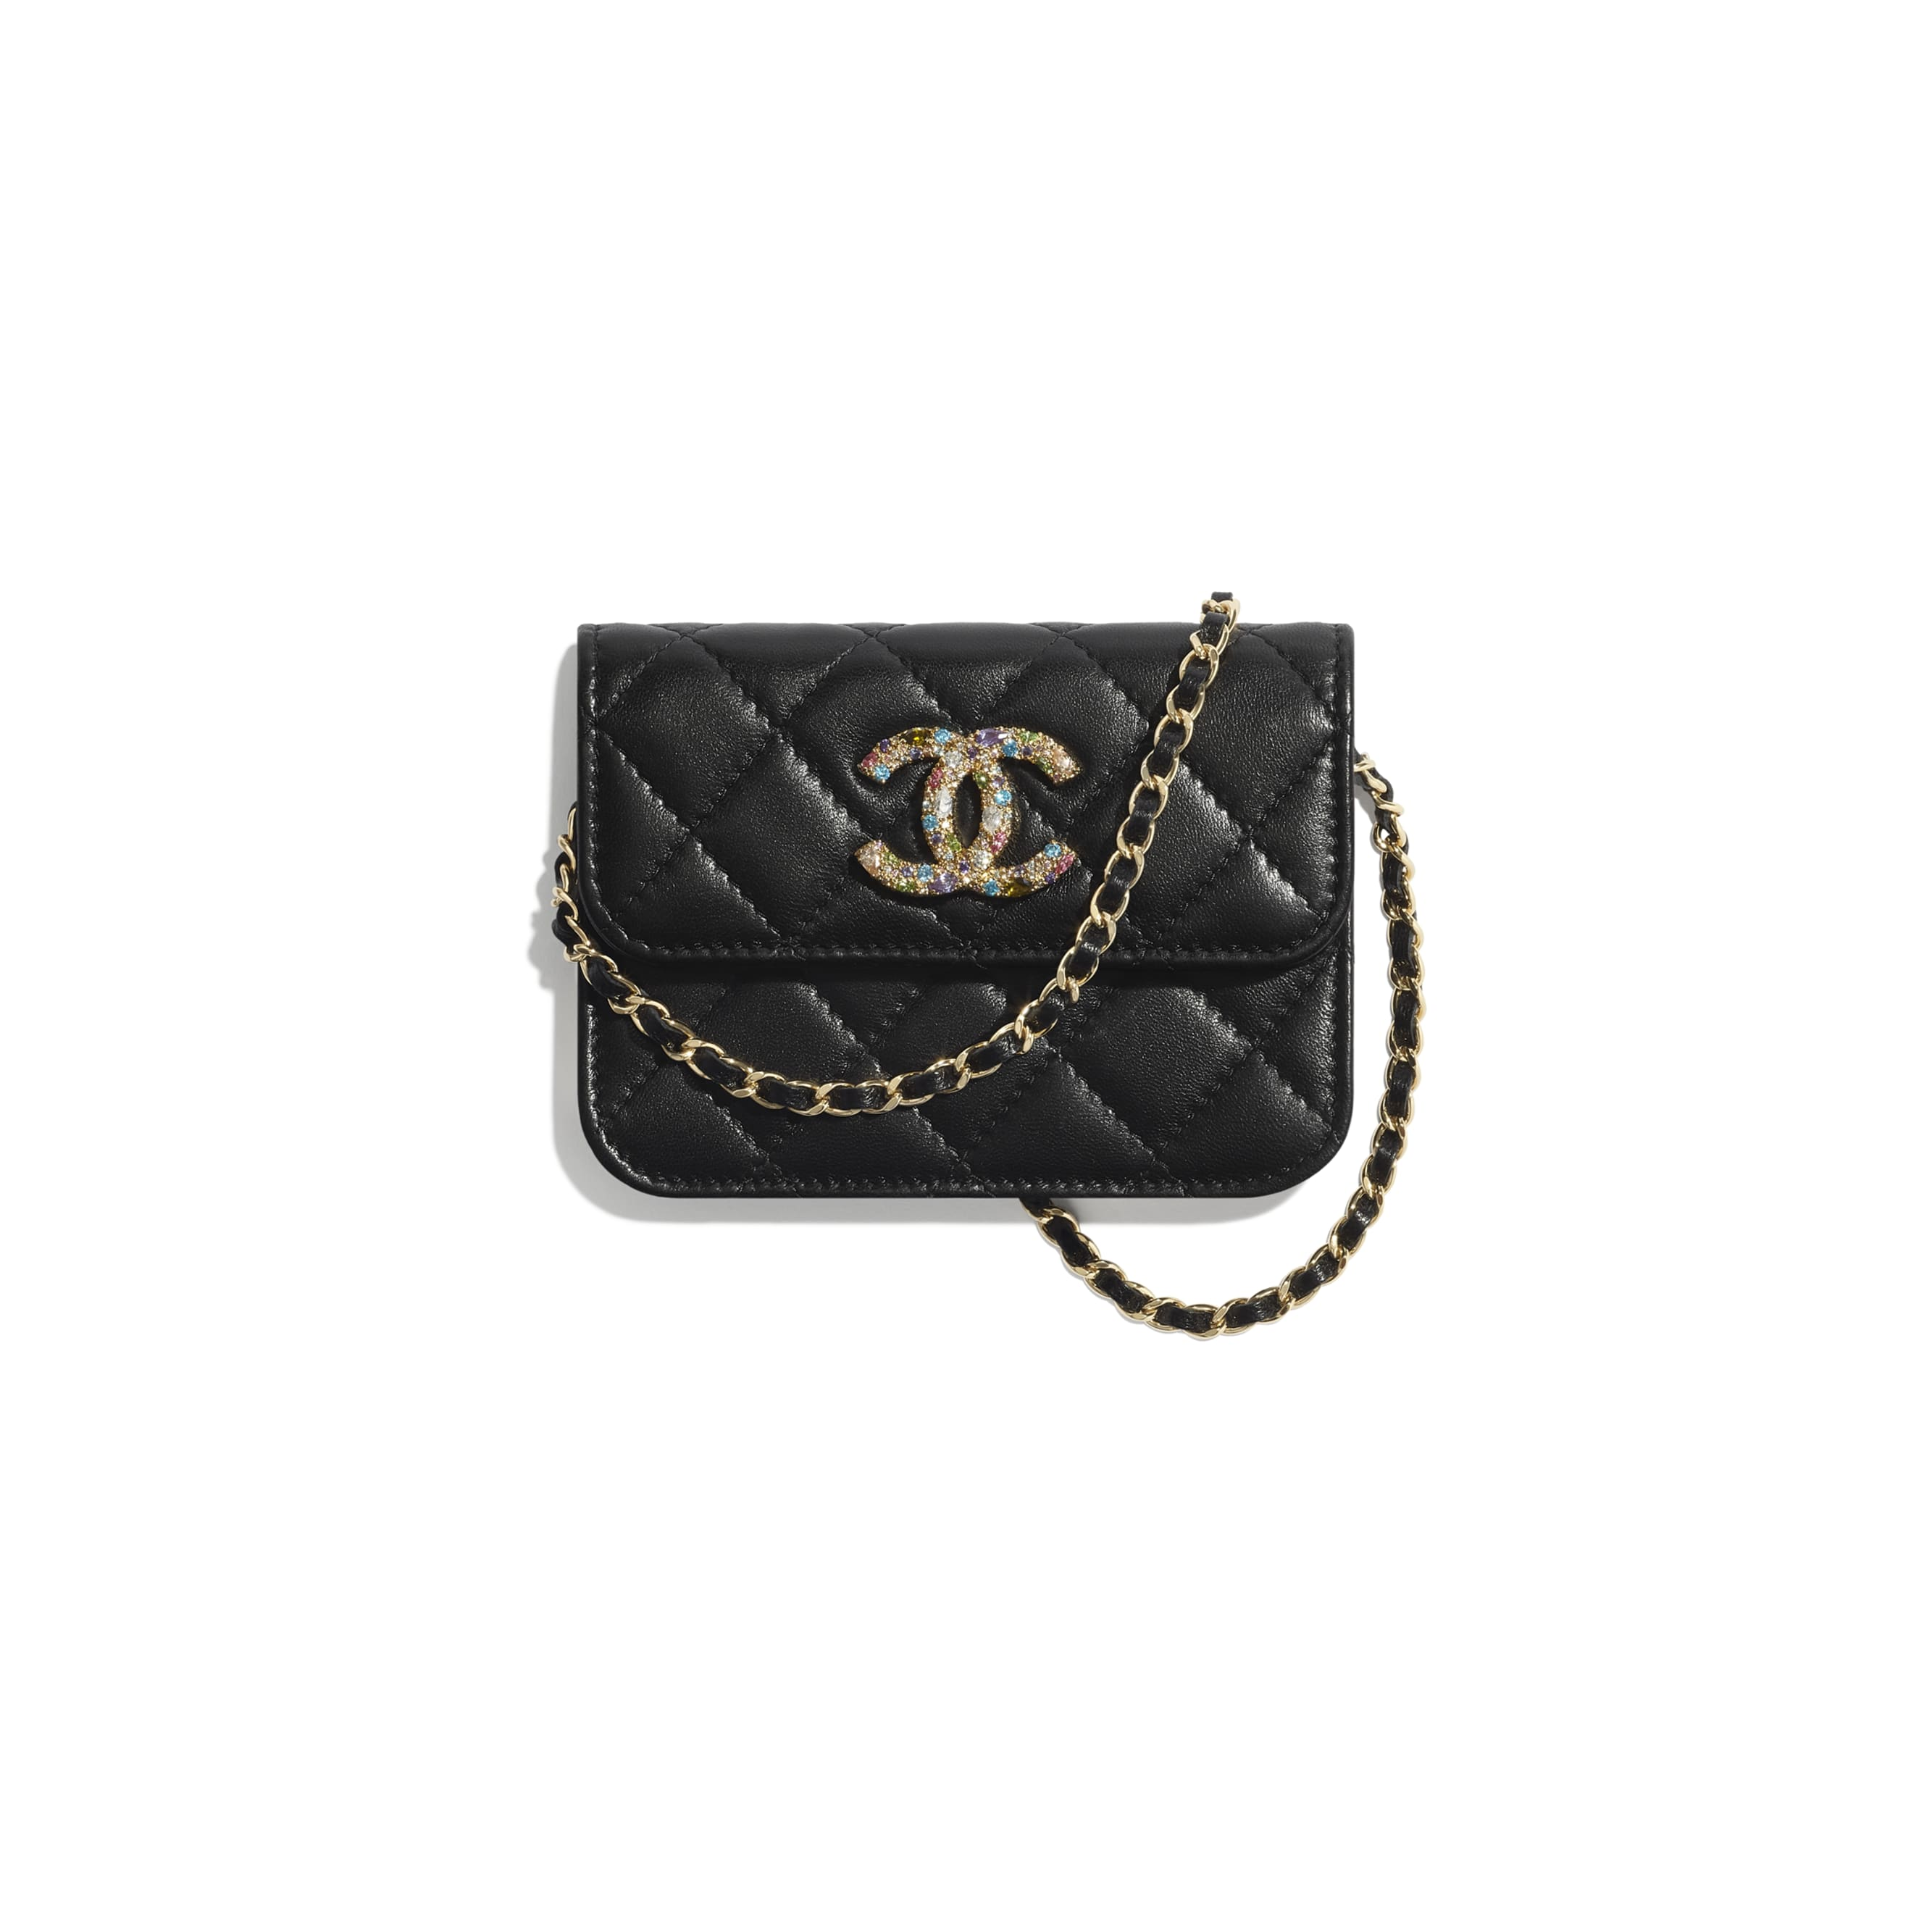 Clutch With Chain - Black - Lambskin, Zirconium & Gold-Tone Metal - CHANEL - Default view - see standard sized version